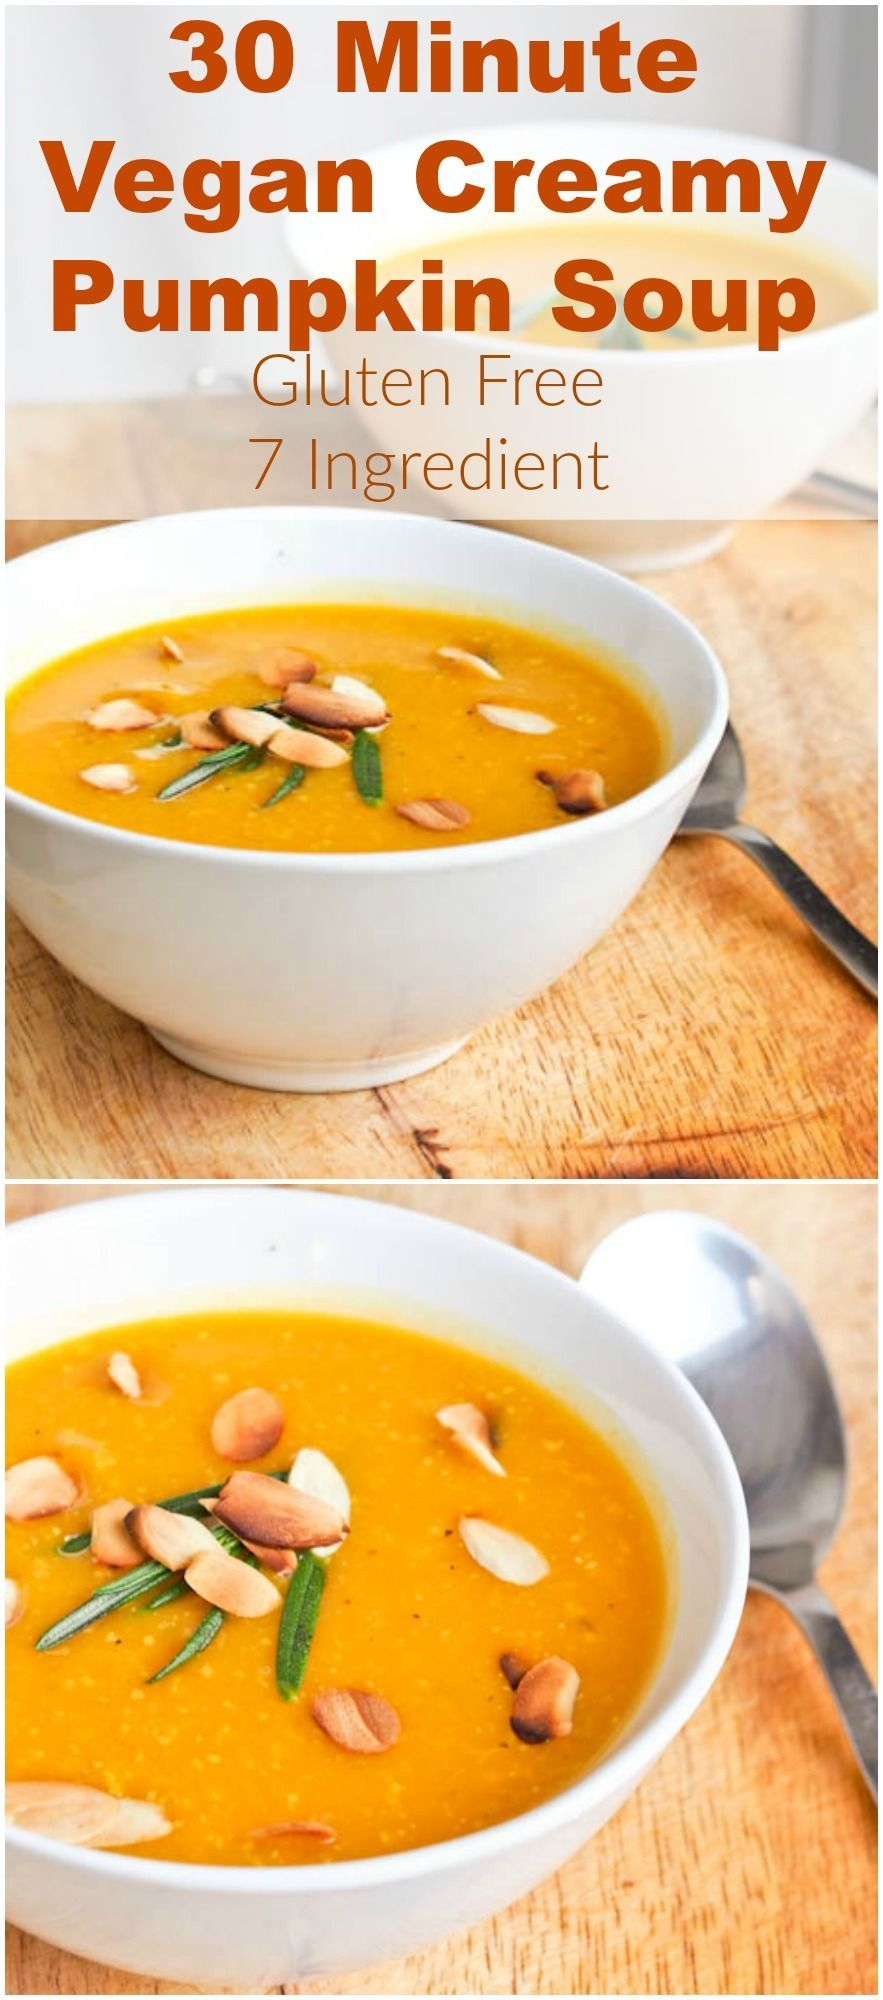 Pumpkin Soup (Gluten-Free) A creamy gluten free and vegan pumpkin soup recipe that requires only 7 ingredients and is ready in 30 minutes. This might just be the cure for cold winter weather. Serve sprinkled with almonds and fresh rosemary for an extra flavor kick. Simply delicious and healthy too.A creamy gluten free and vegan pumpkin soup r...